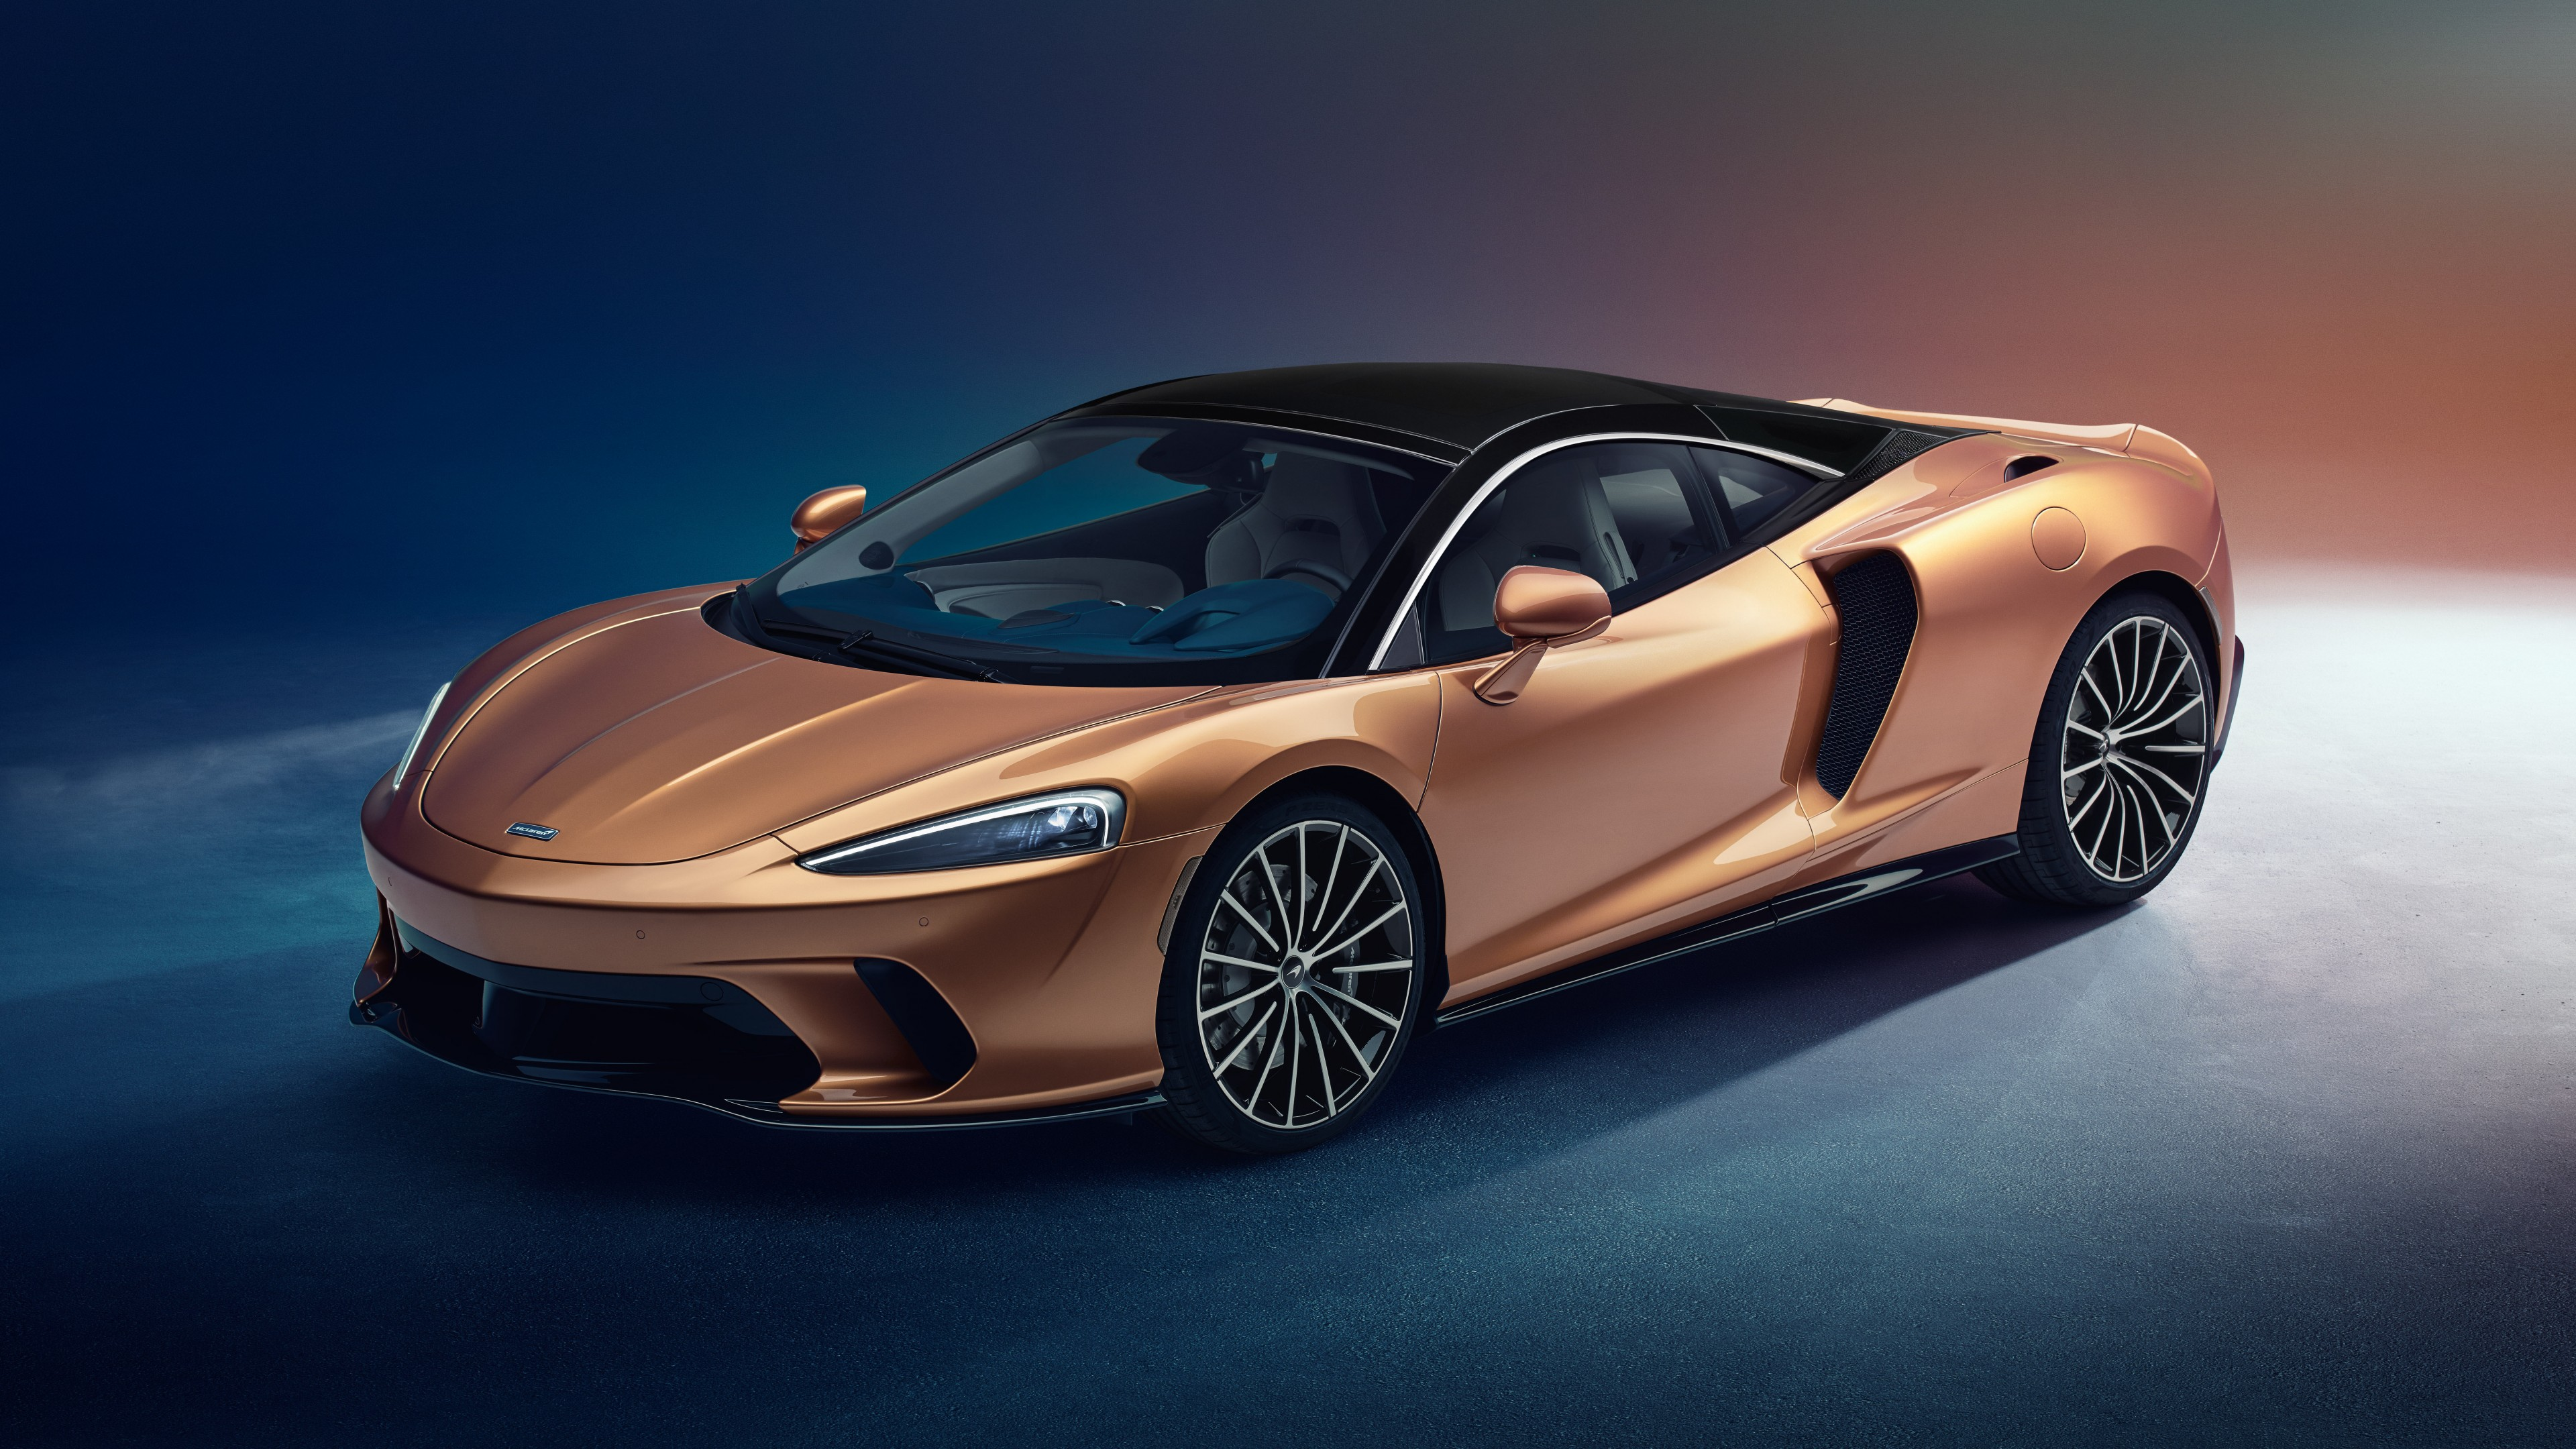 McLaren GT Superlight HD Wallpaper for Desktop